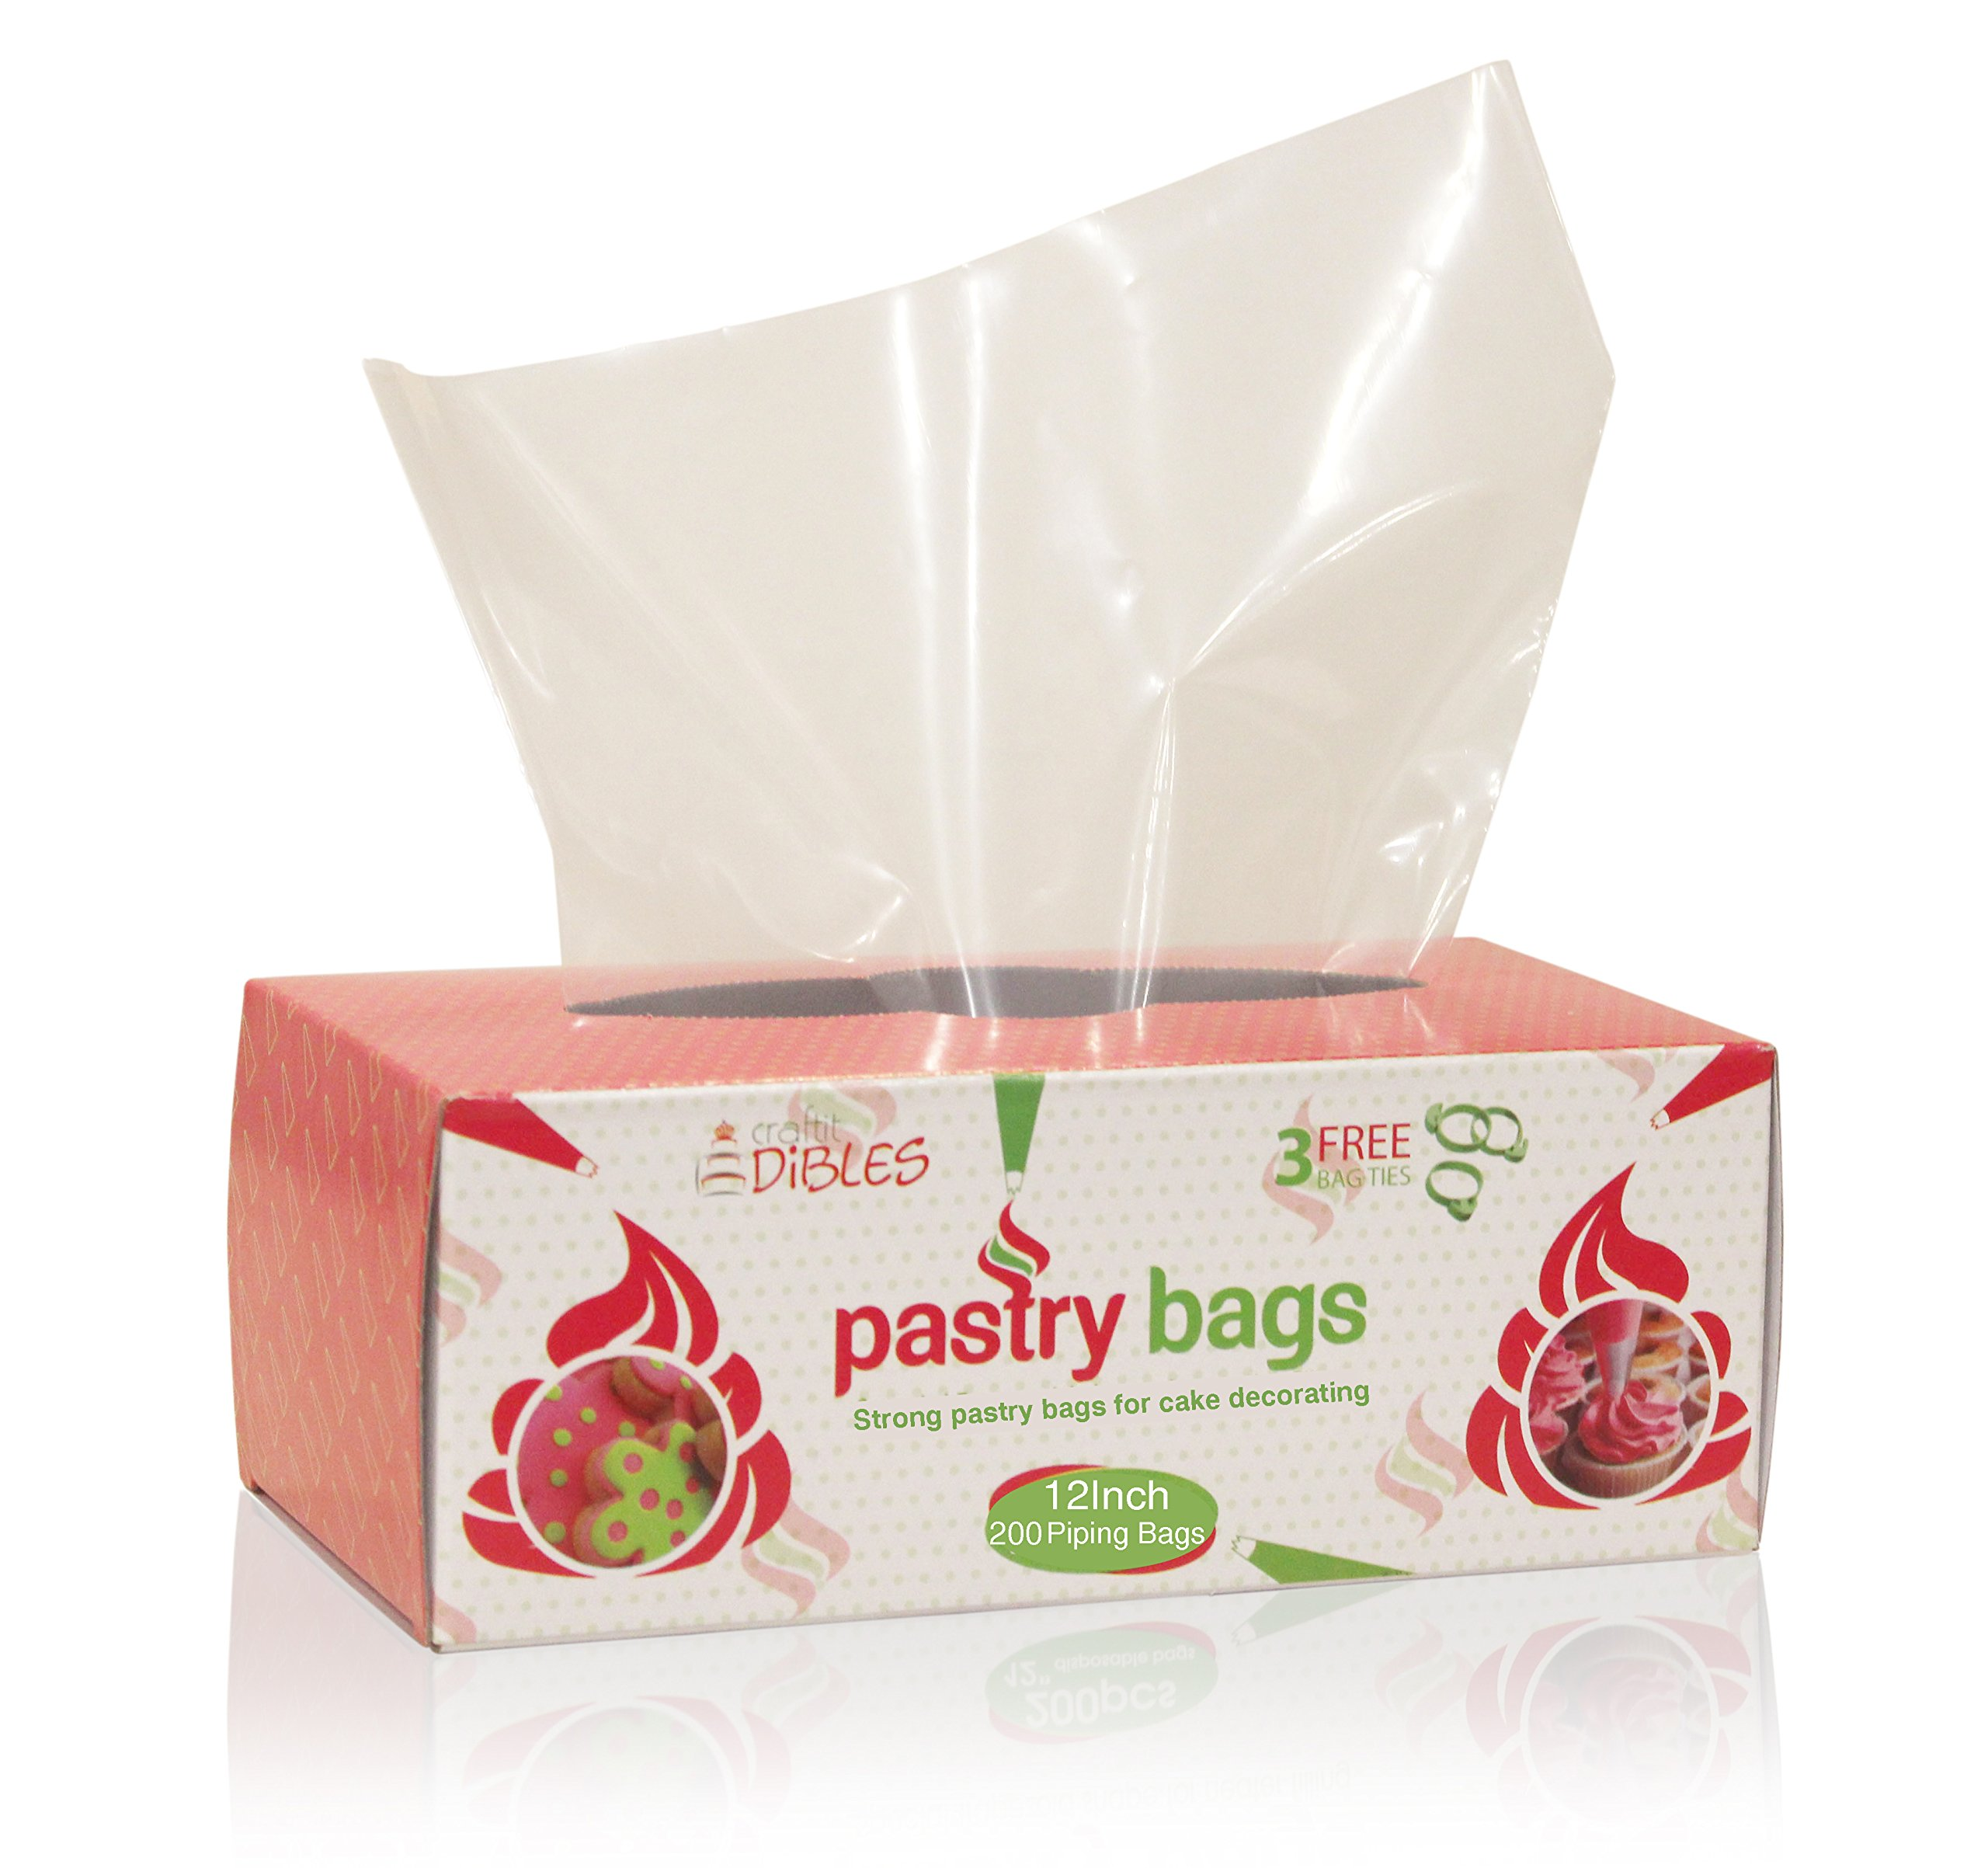 Disposable Pastry Bags, 200 Pack - 12 Inch Extra Thick in Dispenser box, Microwave safe by CiE - 3 Free piping bag ties included!